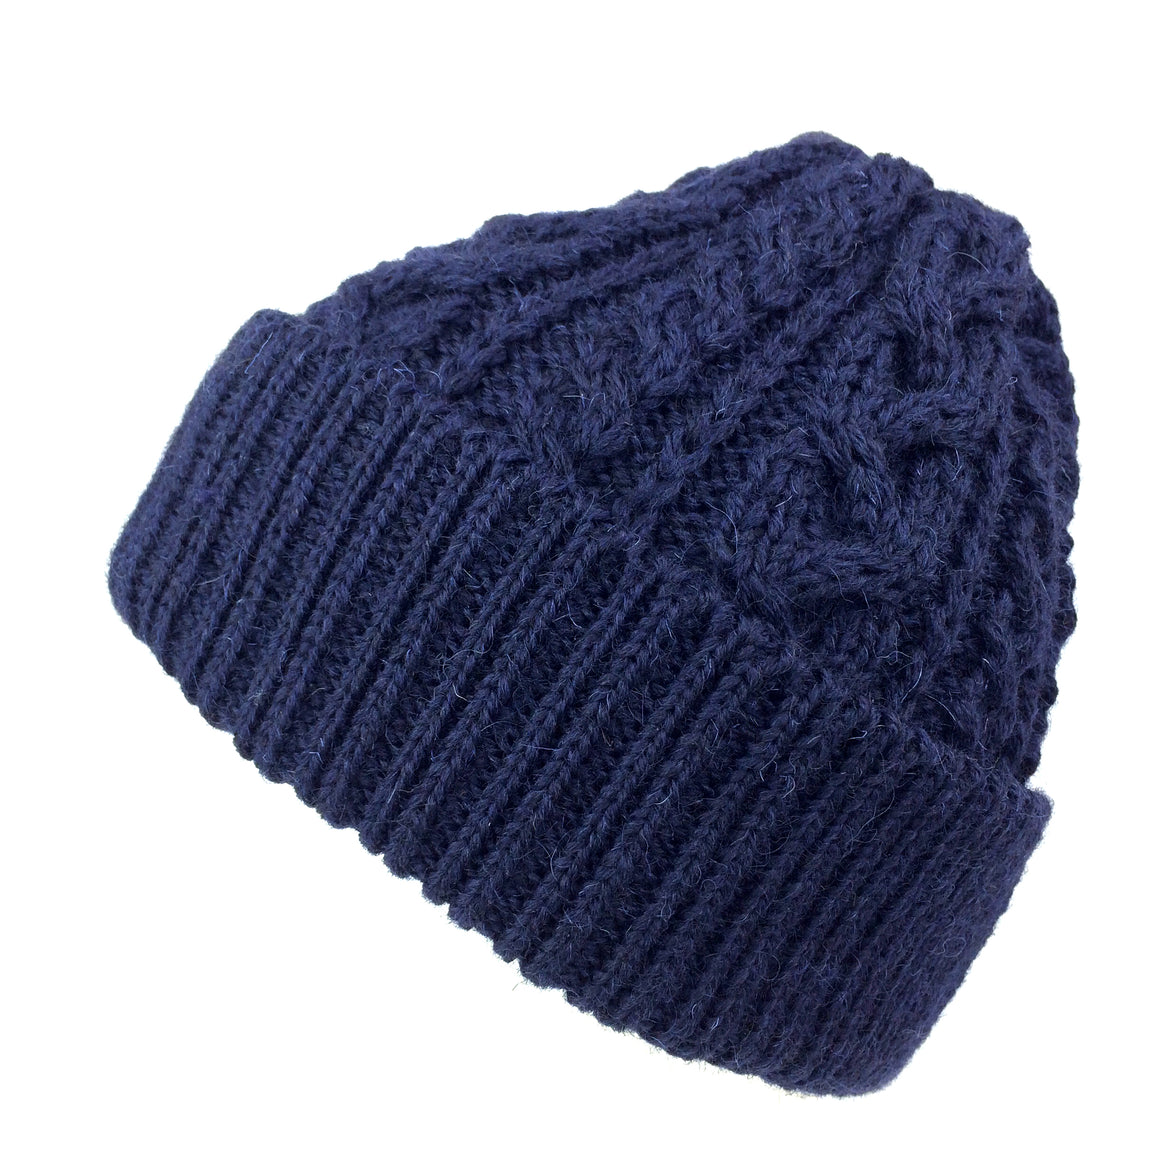 Wool Beanie Fisherman's Hat Merino Wool Cable Knit - 4 Colours: Black, Olive Green, Charcoal Grey, Navy Blue Bobcap